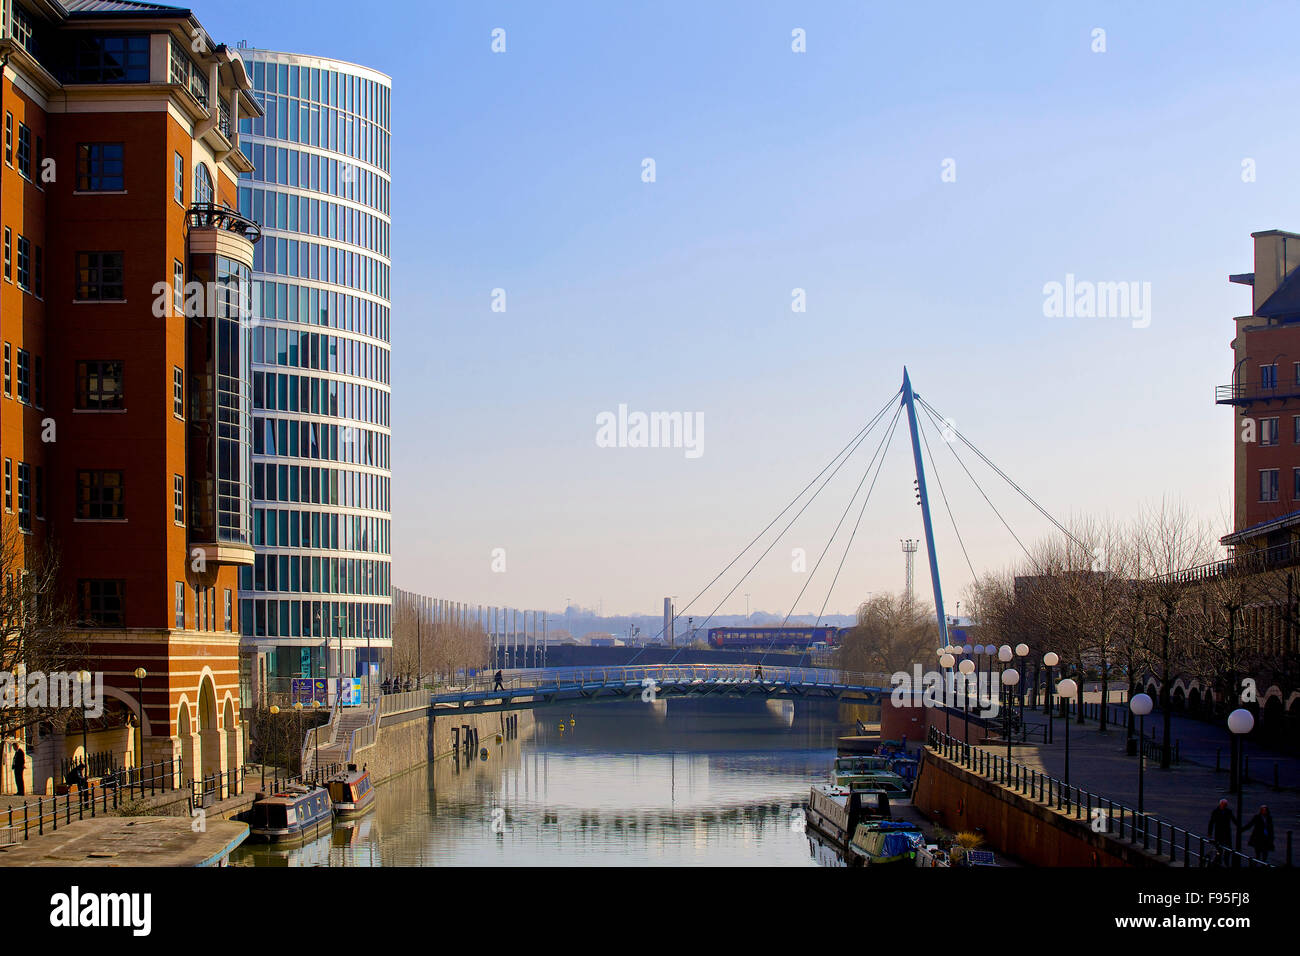 ND2 The Eye, Bristol. View of The Eye adjacent to a more traditional building. The River Avon and footbridge in - Stock Image